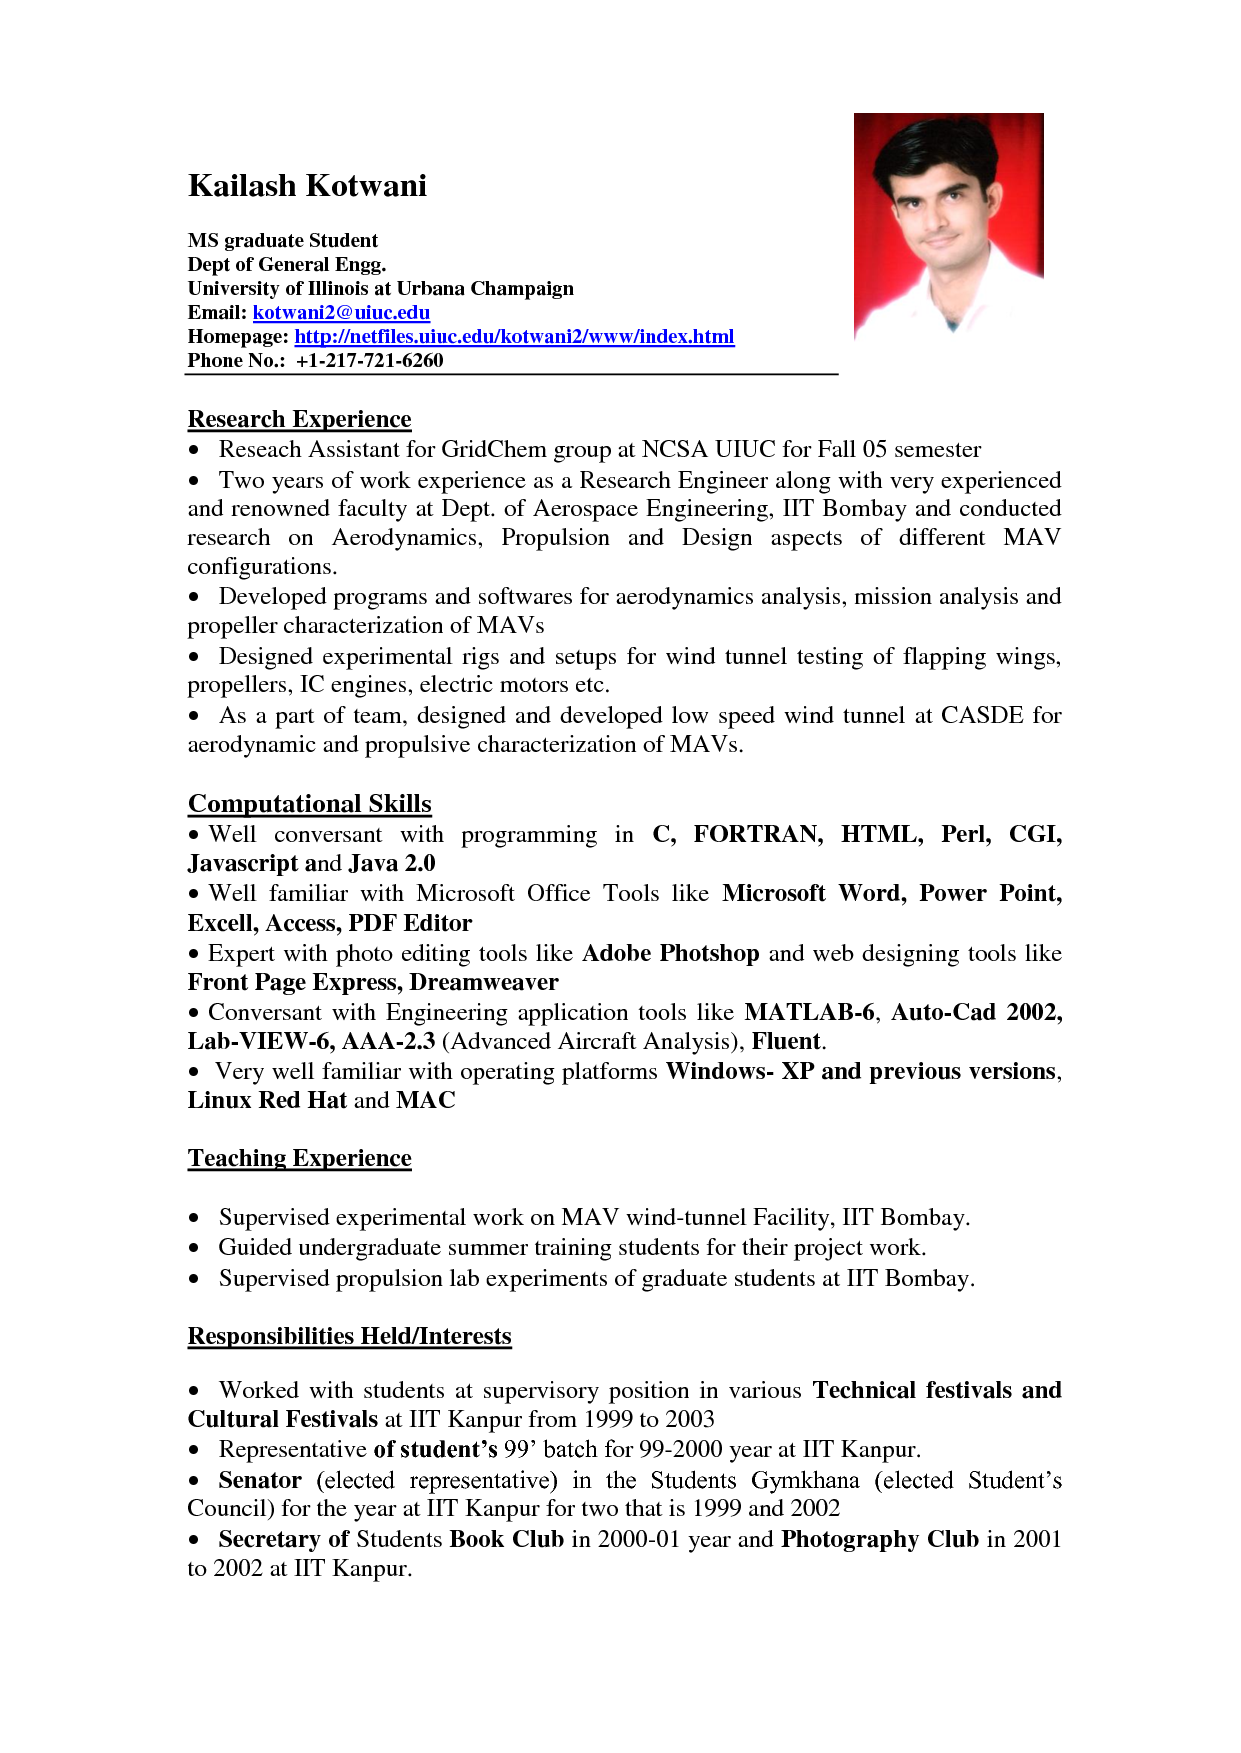 High School Student Resume Examples No Work Experience No Work Experience  Resume Content. How To Write A Resume Resume .  Sample Resume For High School Student With No Work Experience